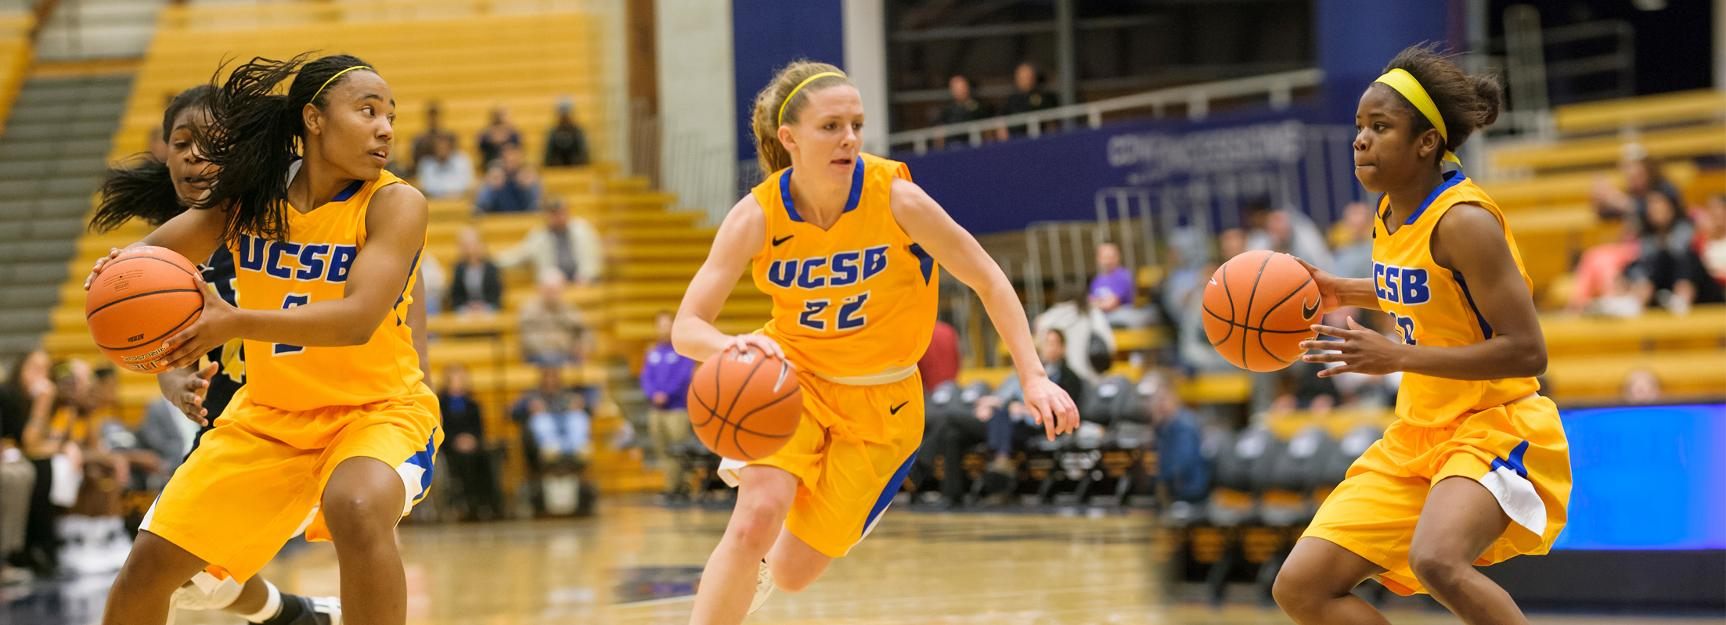 Nesbit, Zornig Earn All-Big West Honorable Mentions, Jemerigbe Named to All-Freshman Team